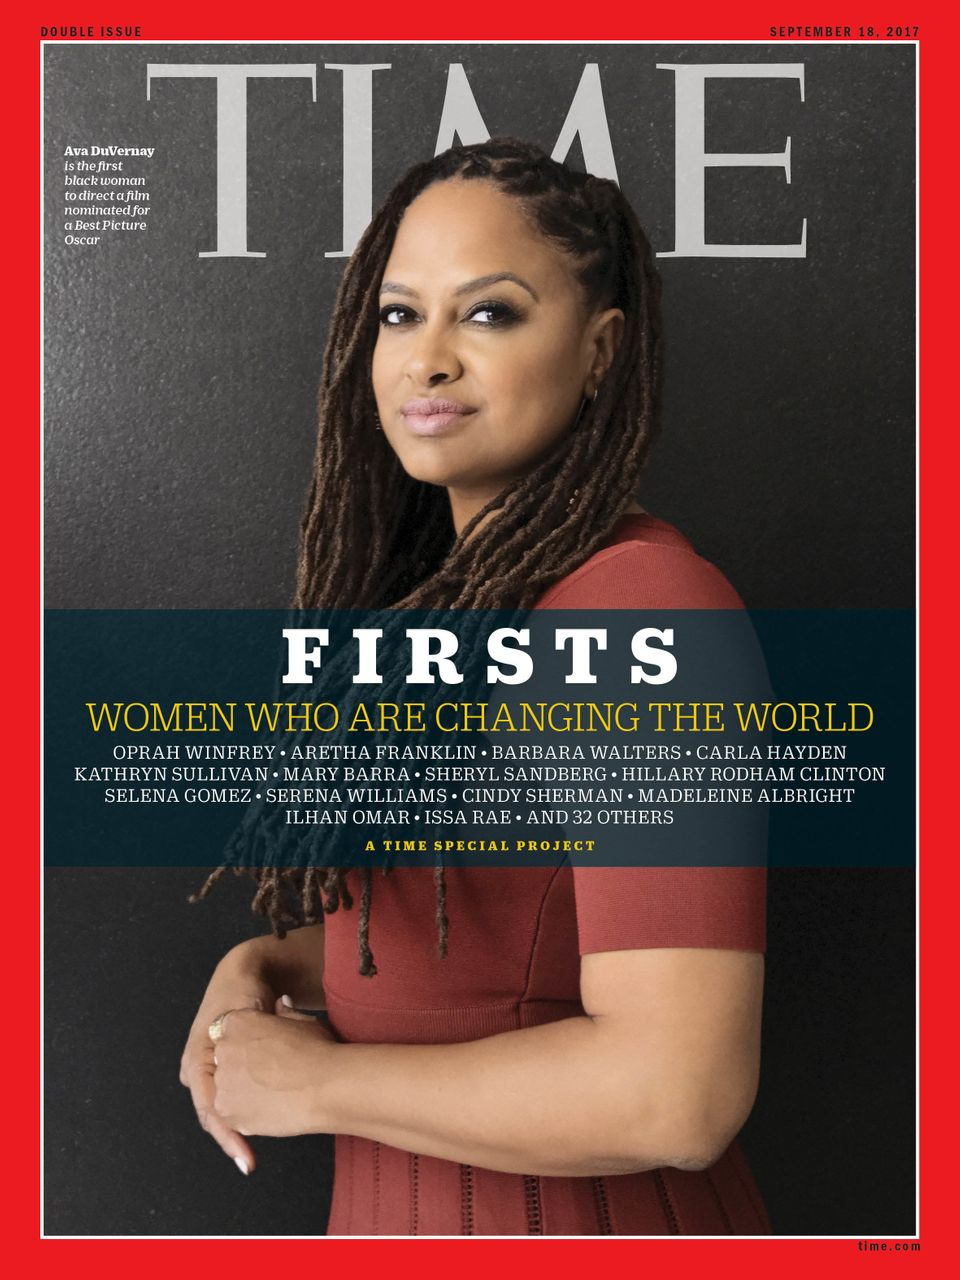 DuVernay is the first black woman to direct a film nominated for an Academy Award for Best Picture.